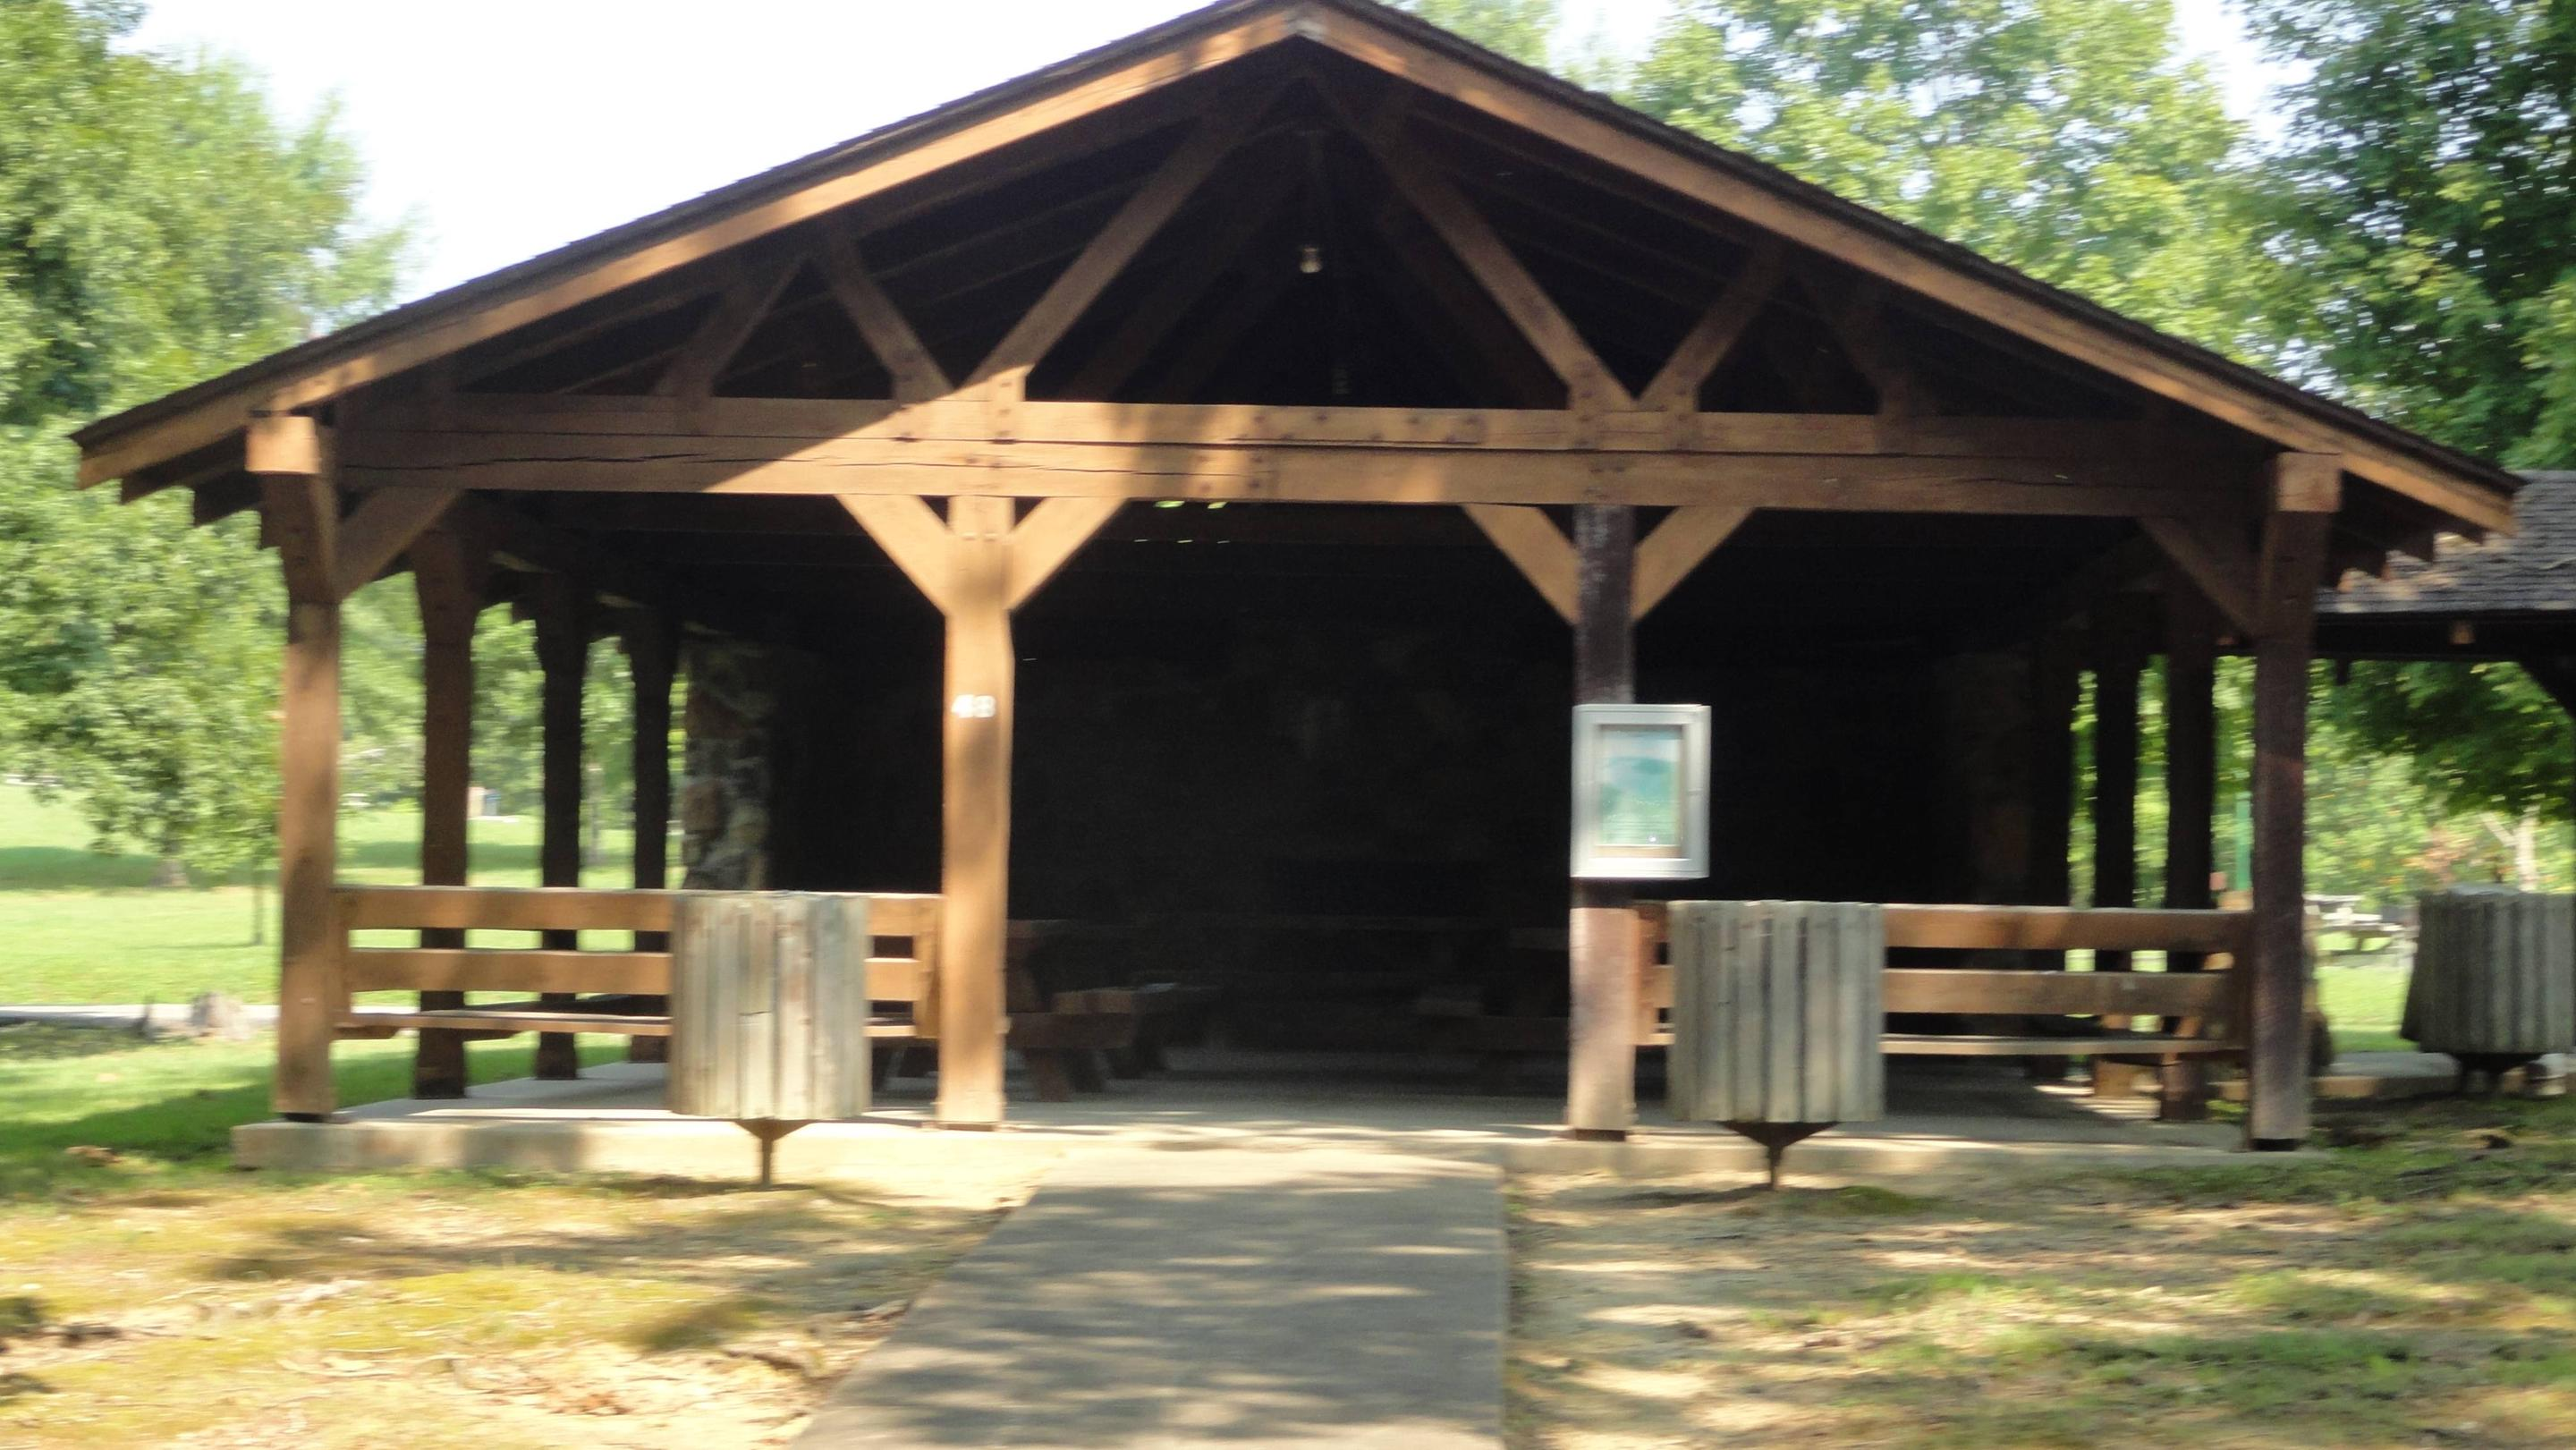 WILLOW GROVE PICNIC SHELTER WILLOW GROVE PICNIC SHELTER